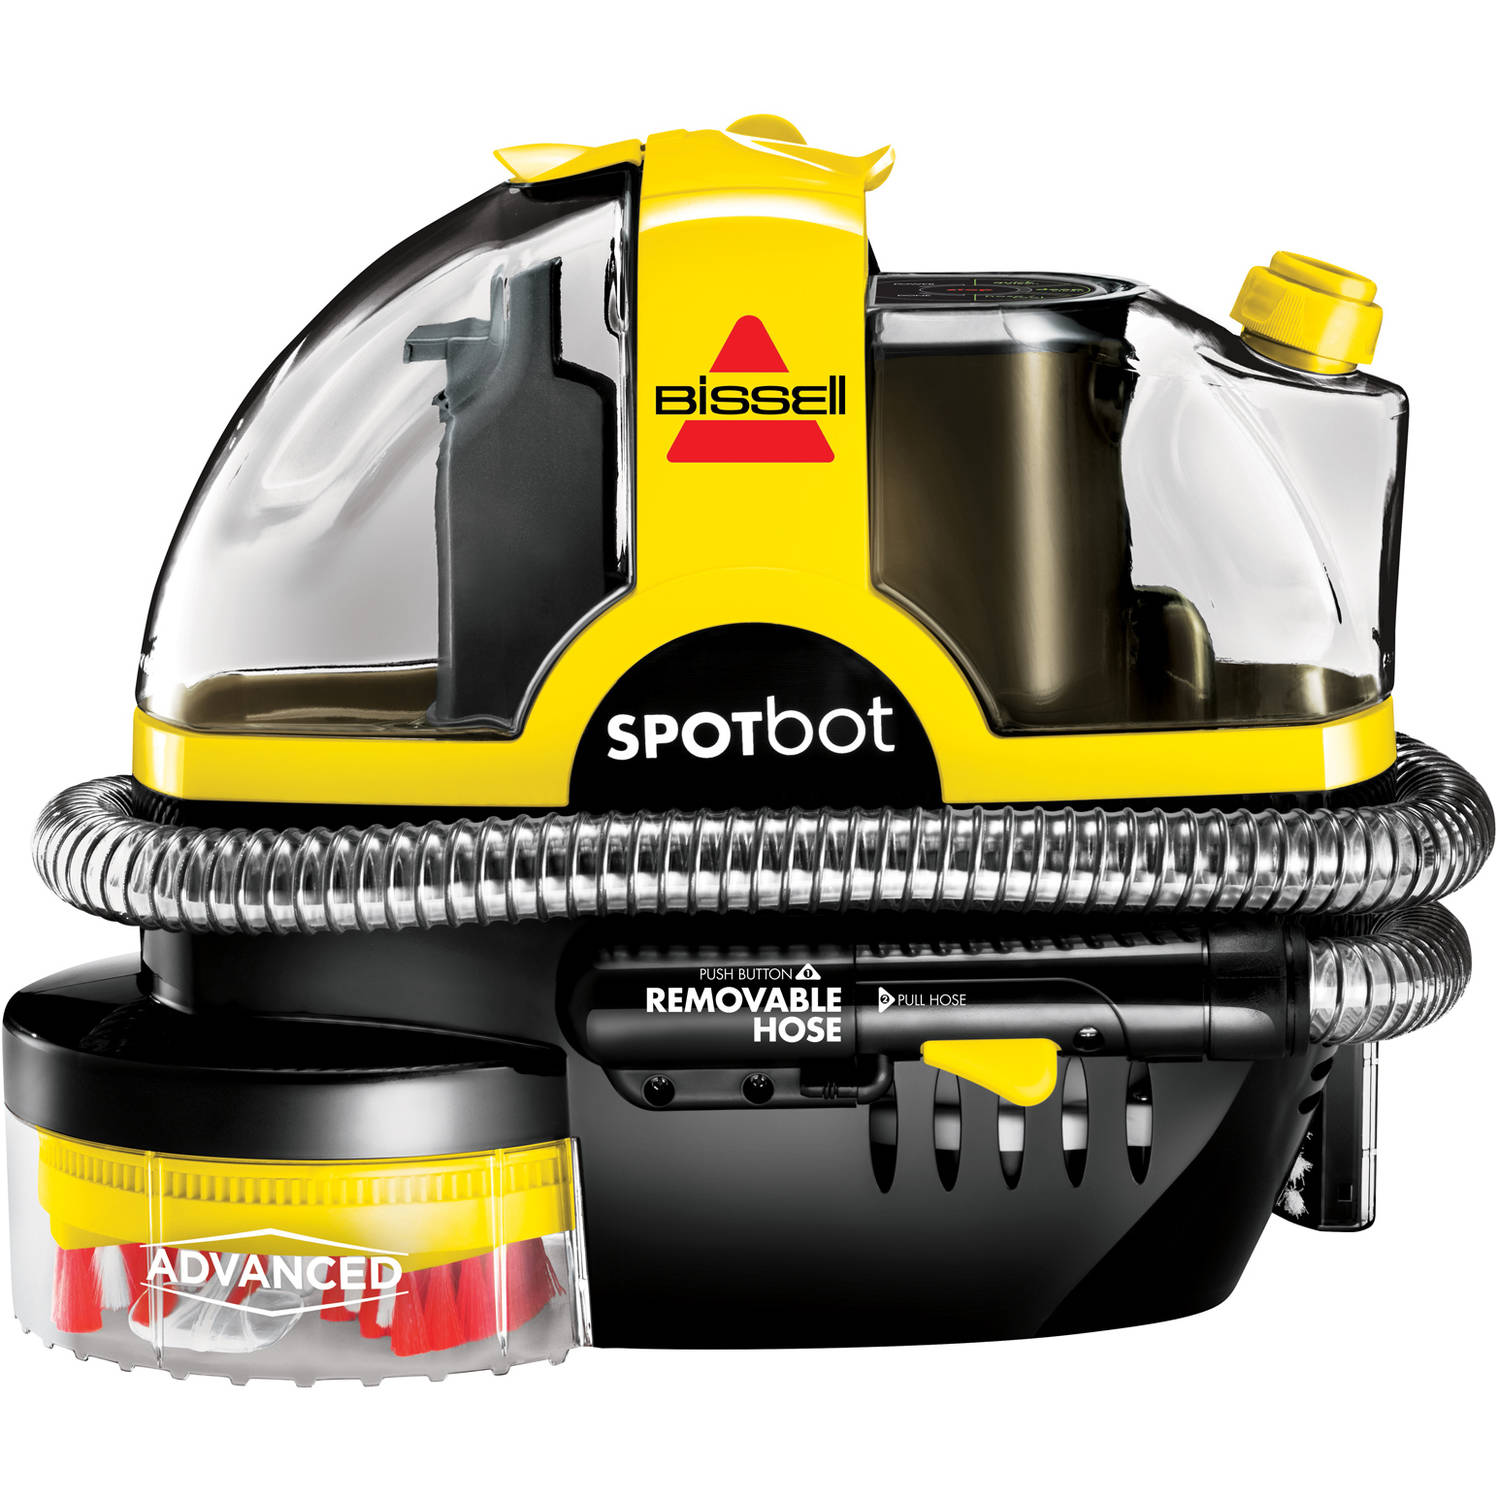 BISSELL SpotBot Portable Spot and Stain Cleaner with Antibacterial Formula, 1711